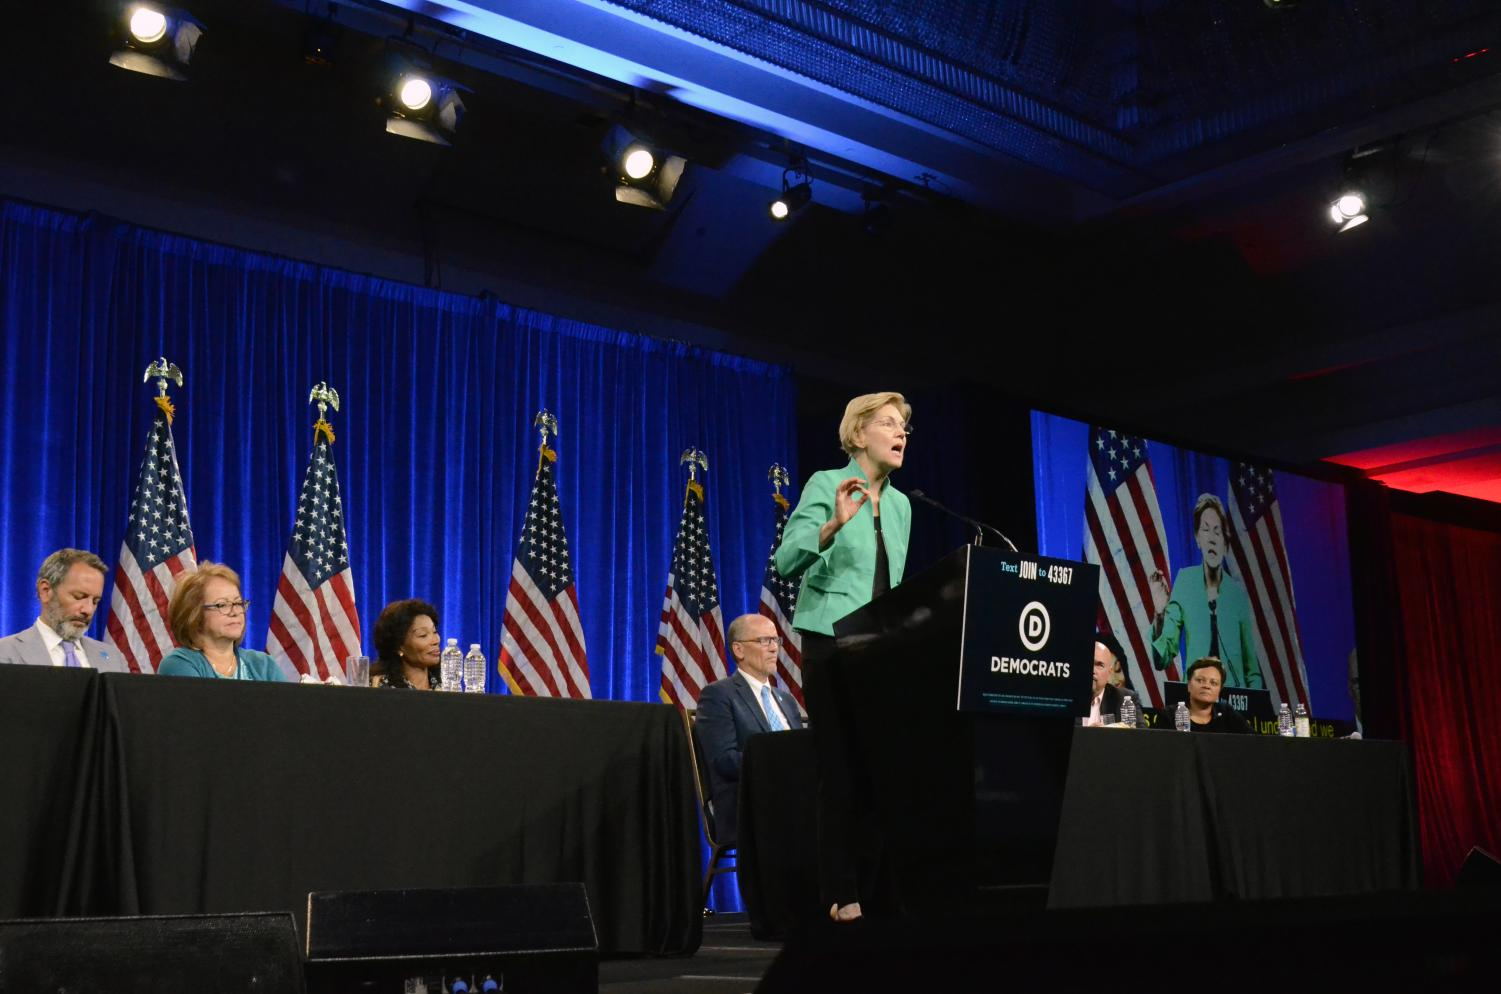 Warren+speaks+to+DNC+members+and+their+guests+on+how+the+government+has+stopped+working+for+the+people.+Warren+is+one+of+13+candidates+who+delivered+a+speech+at+the+DNC+meeting+on+Friday.